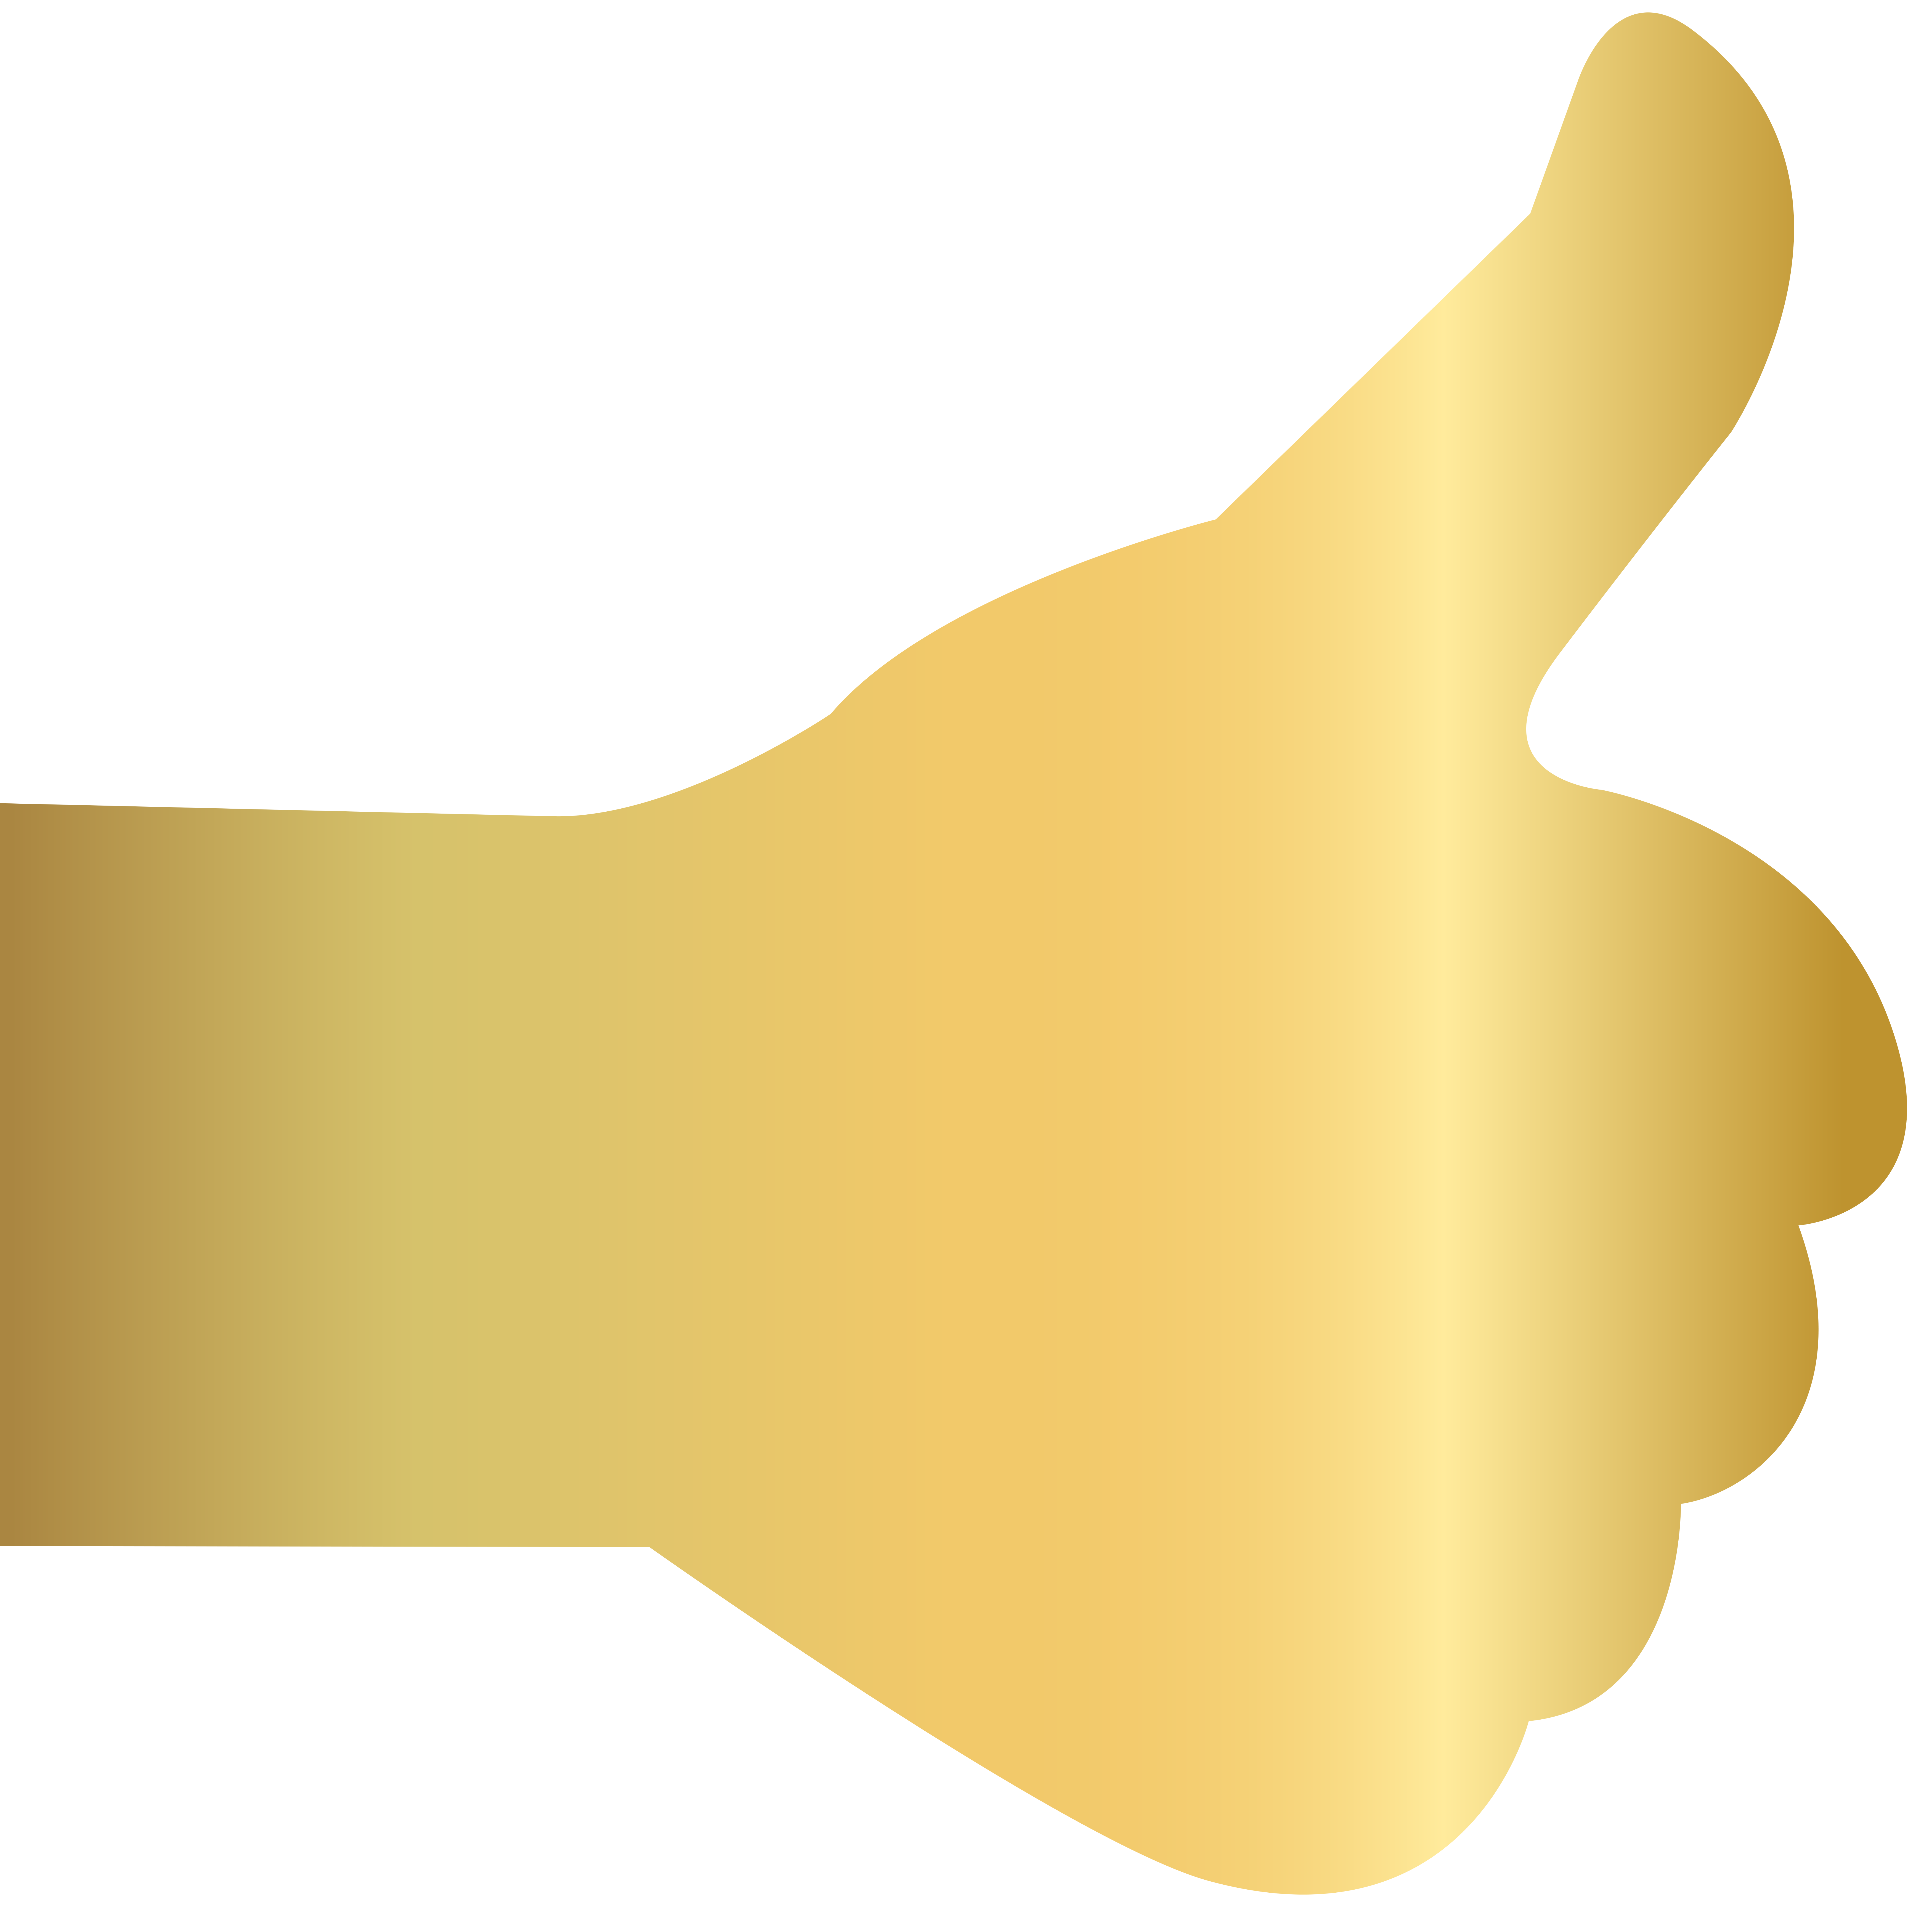 Thumbs up free clip art clipart royalty free library Gold Thumb Up Transparent Clip Art Image | Gallery Yopriceville ... clipart royalty free library